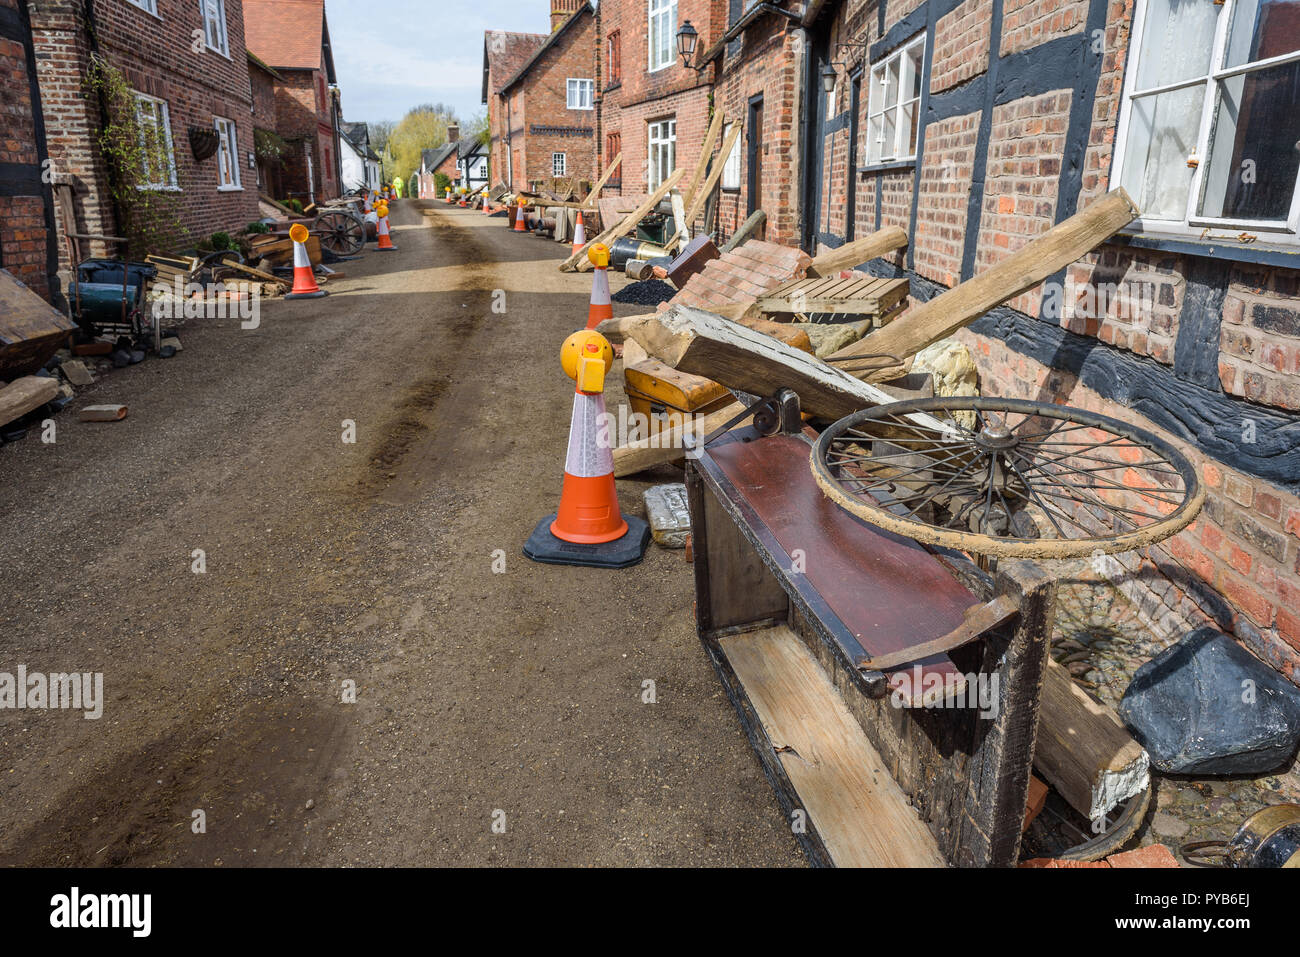 Props and debris litter alongside cottages for  the new BBC drama 'War Of The Worlds' by HG Wells,filmed at Great Budworth village, Cheshire, April 20 - Stock Image